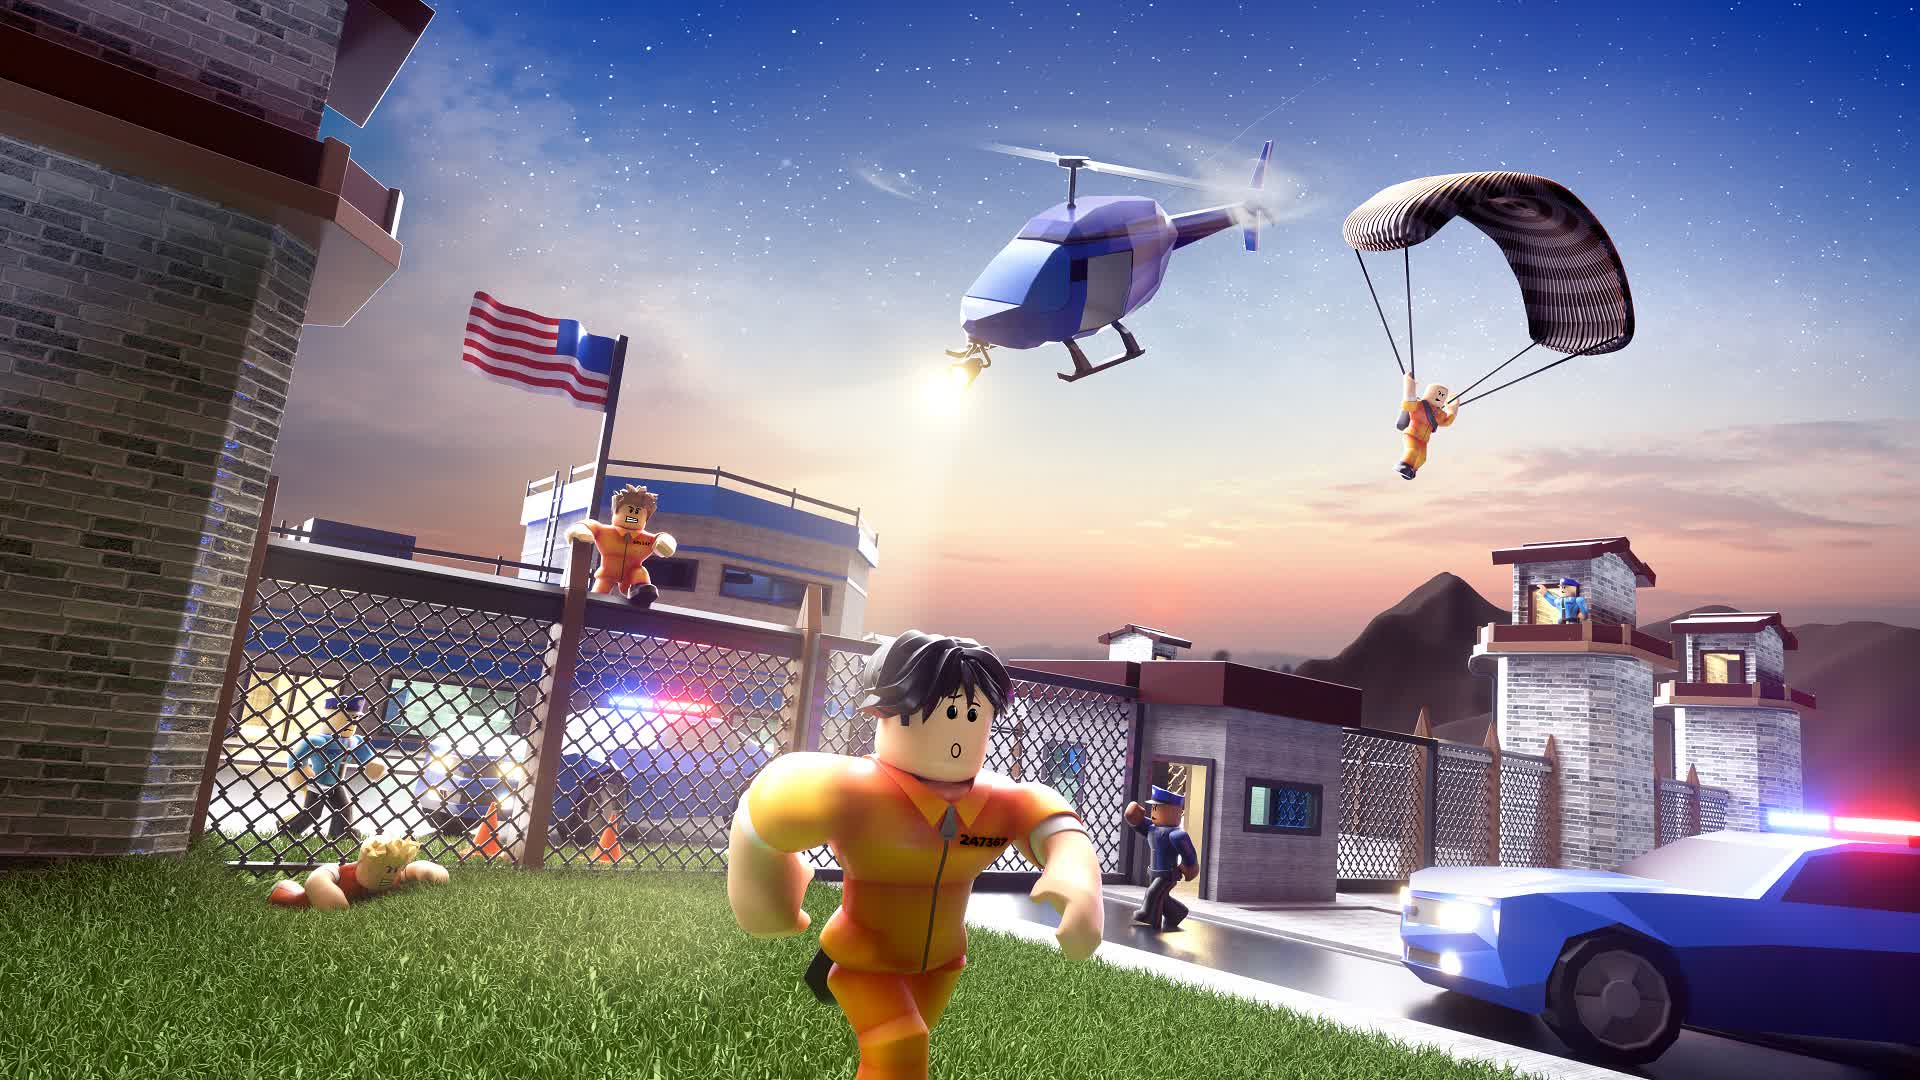 Roblox hit with $200 million lawsuit over creators' use of unlicensed music